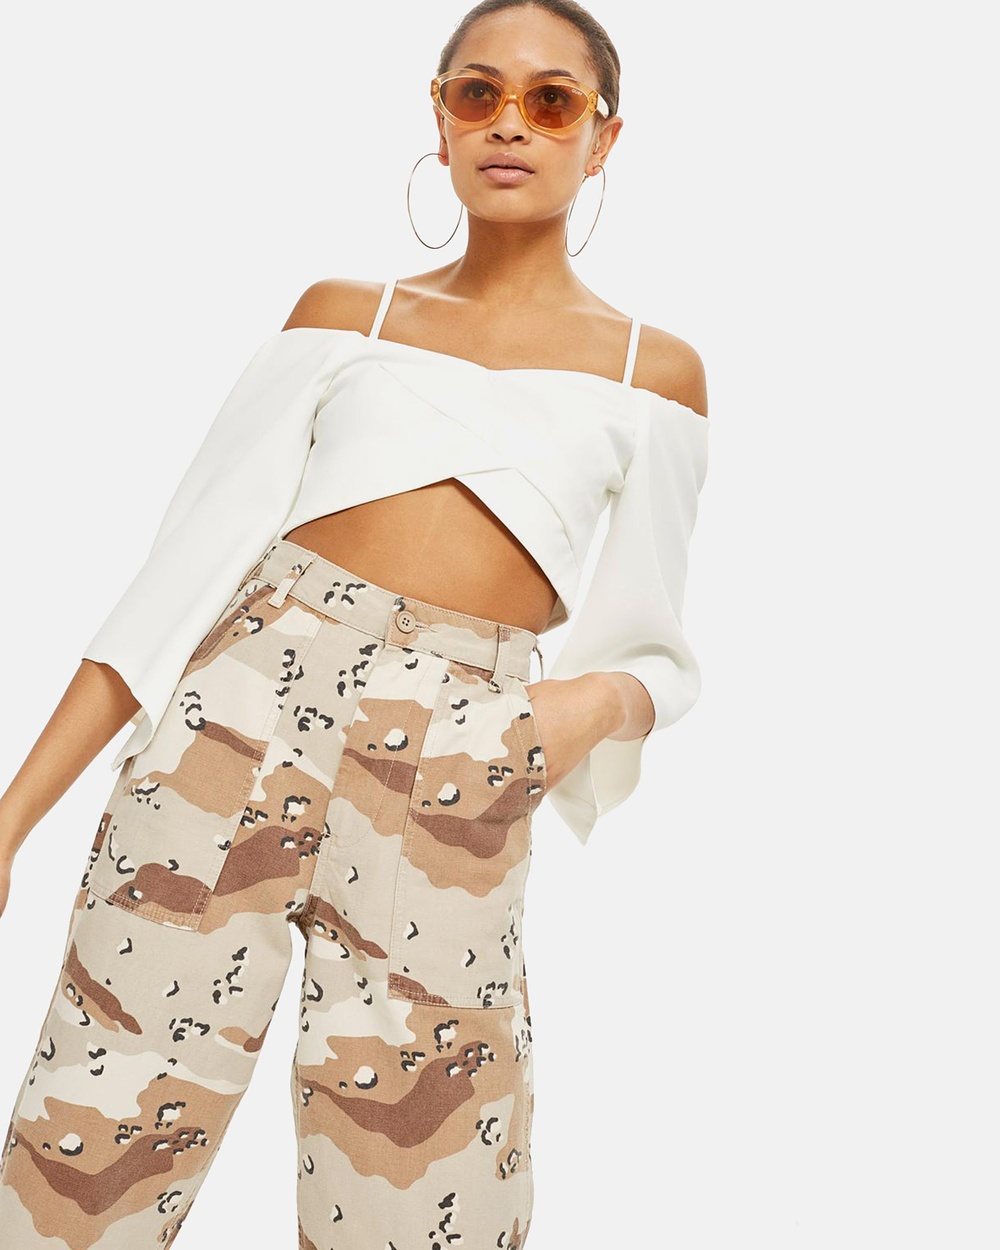 TOPSHOP Angel Sleeve Bardot Top Cropped tops Ivory Angel Sleeve Bardot Top